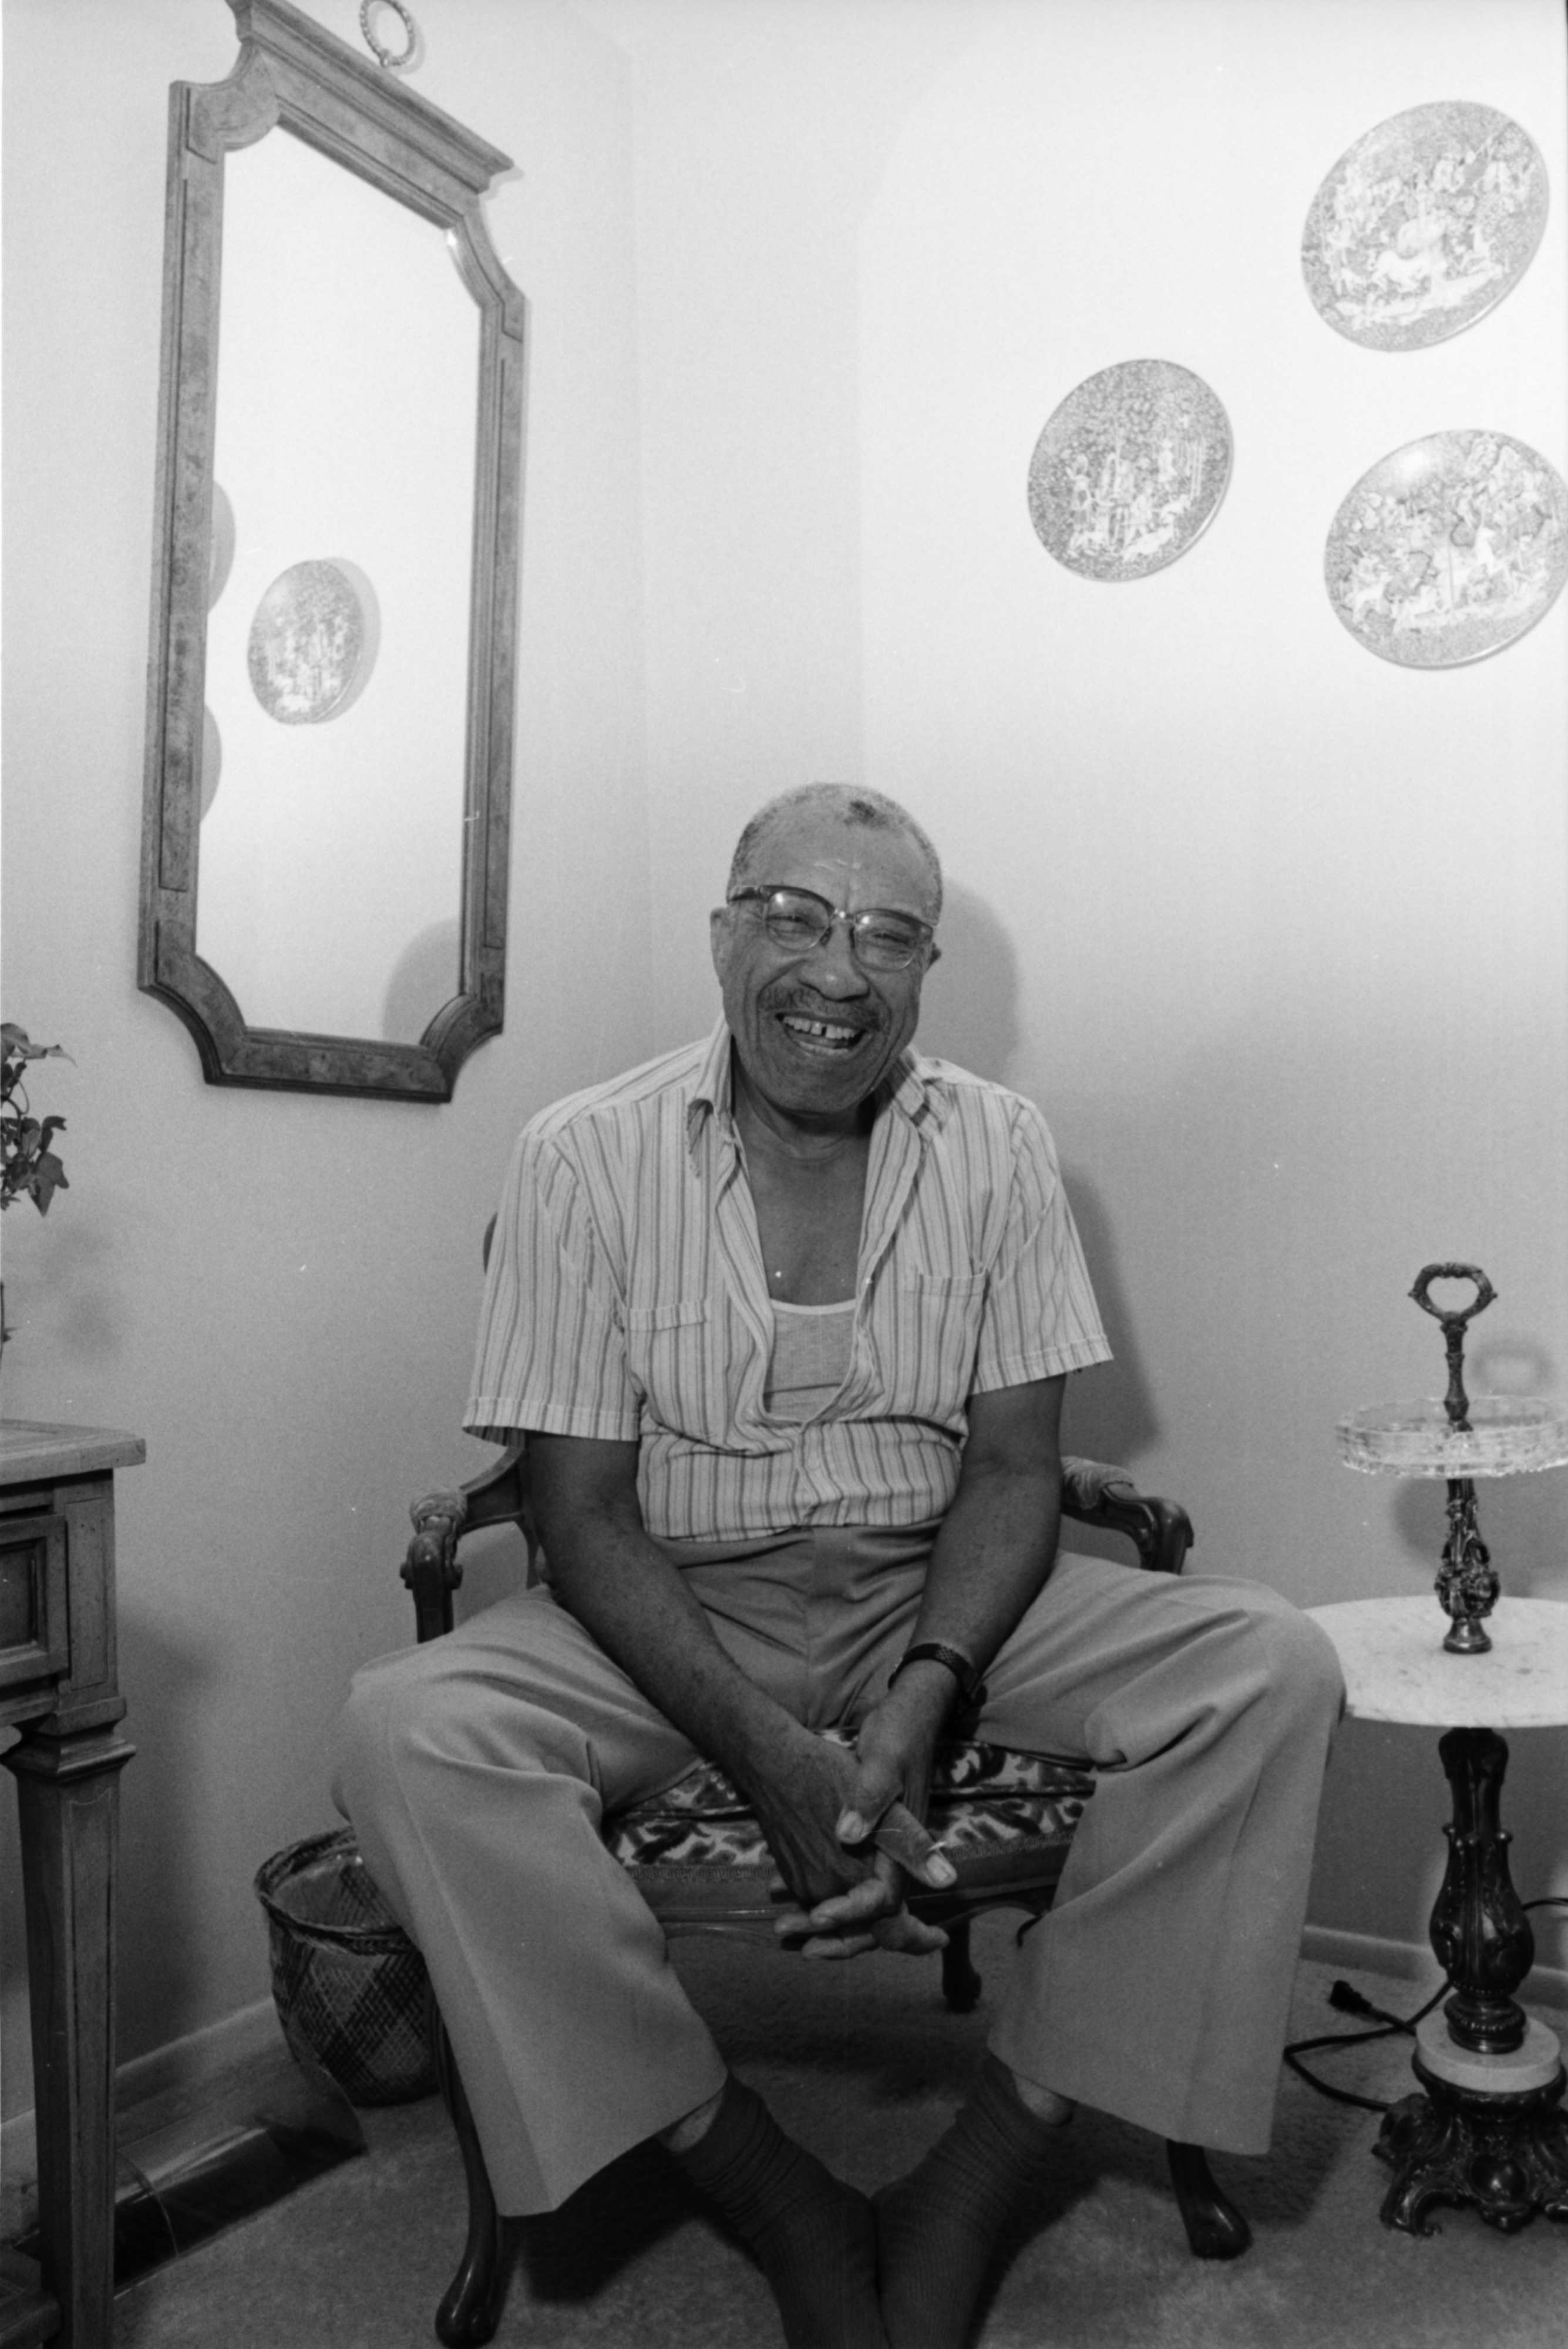 Ypsilanti Historian A.P. Marshall Laughing, July 1987 image